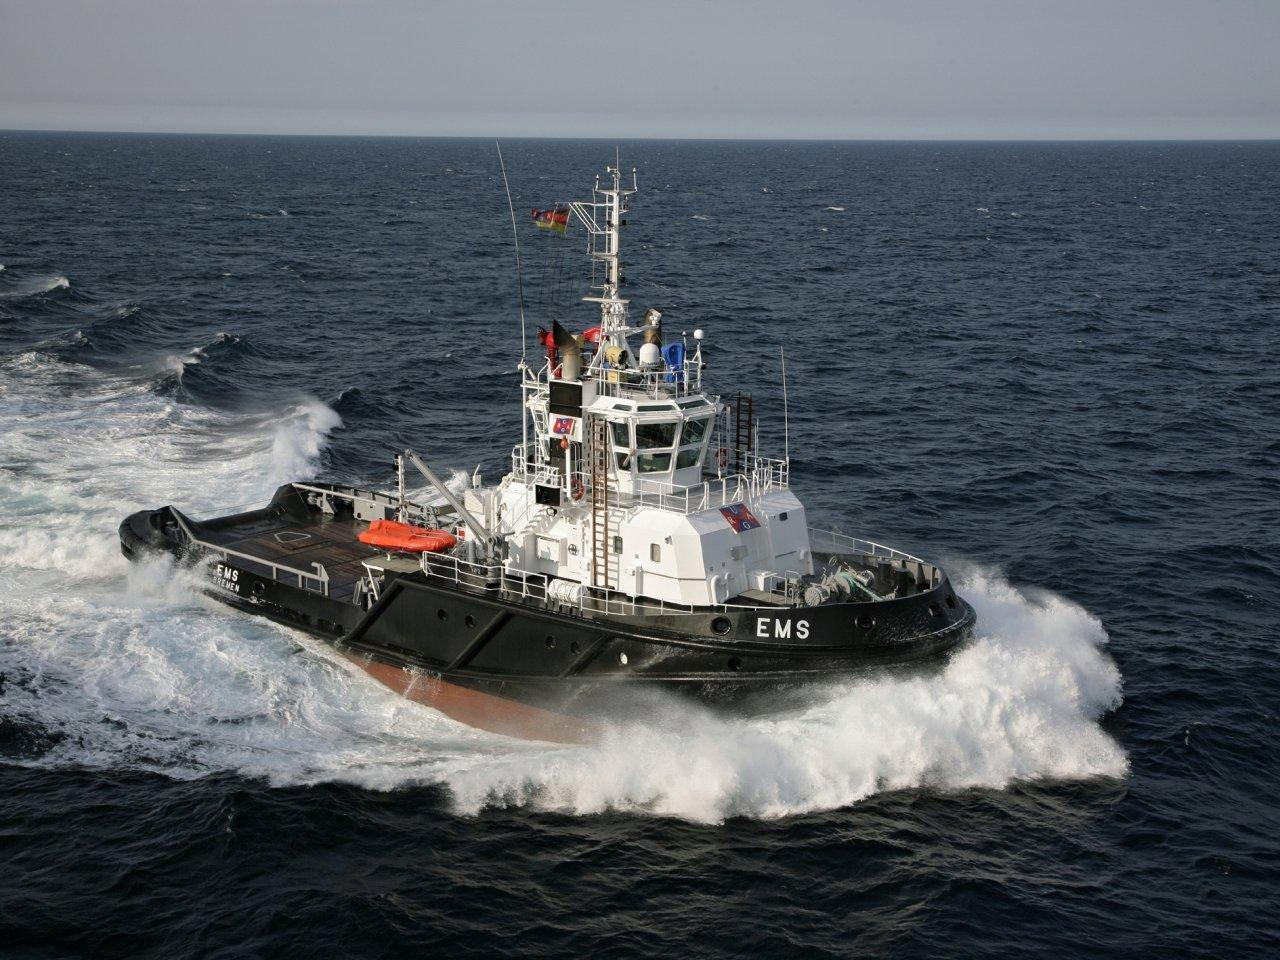 Tugboat wallpapers HD quality